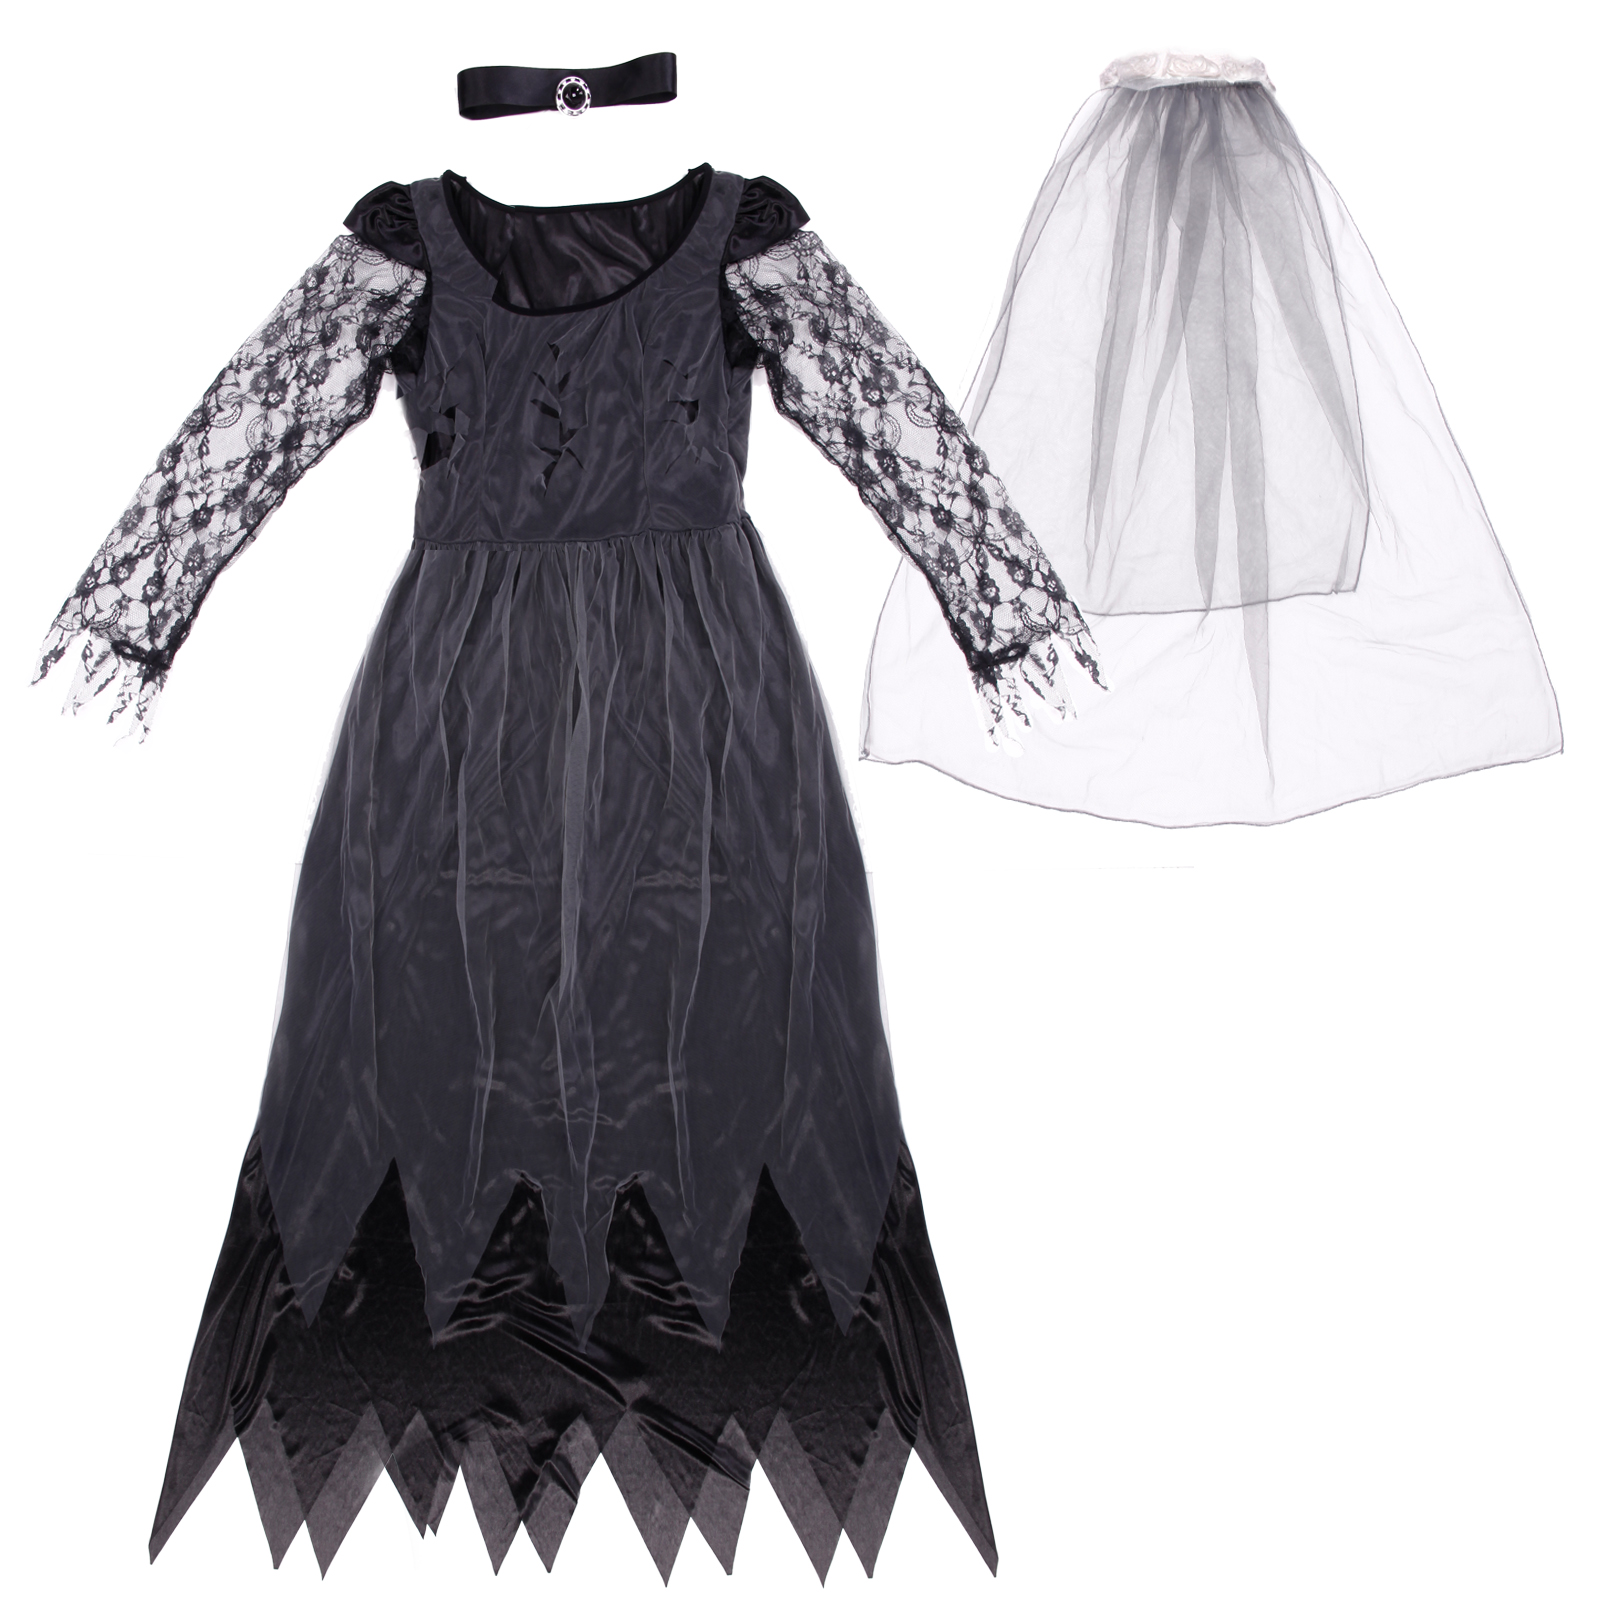 Ladies halloween witch princess vampire zombie bride for Corpse bride wedding dress for sale